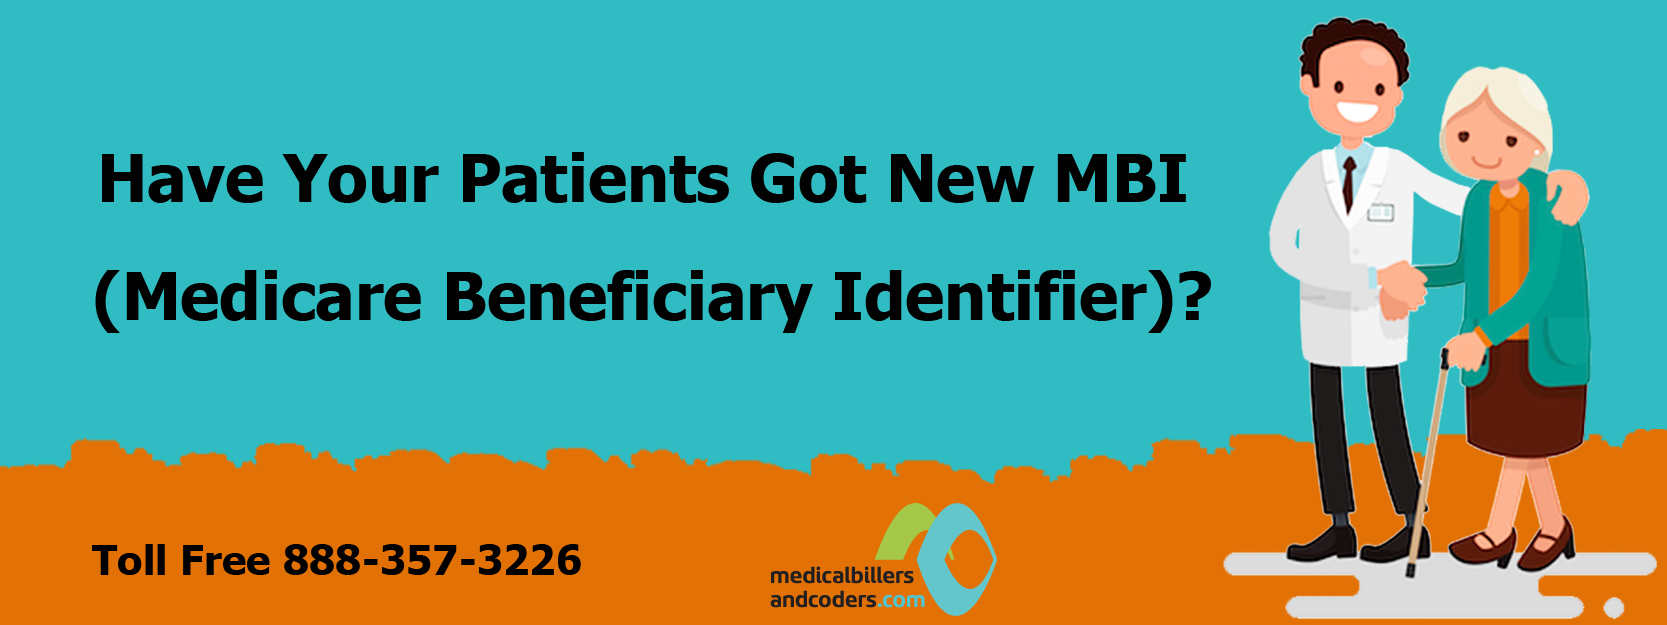 Have Your Patients Got New MBI (Medicare Beneficiary Identifier)?